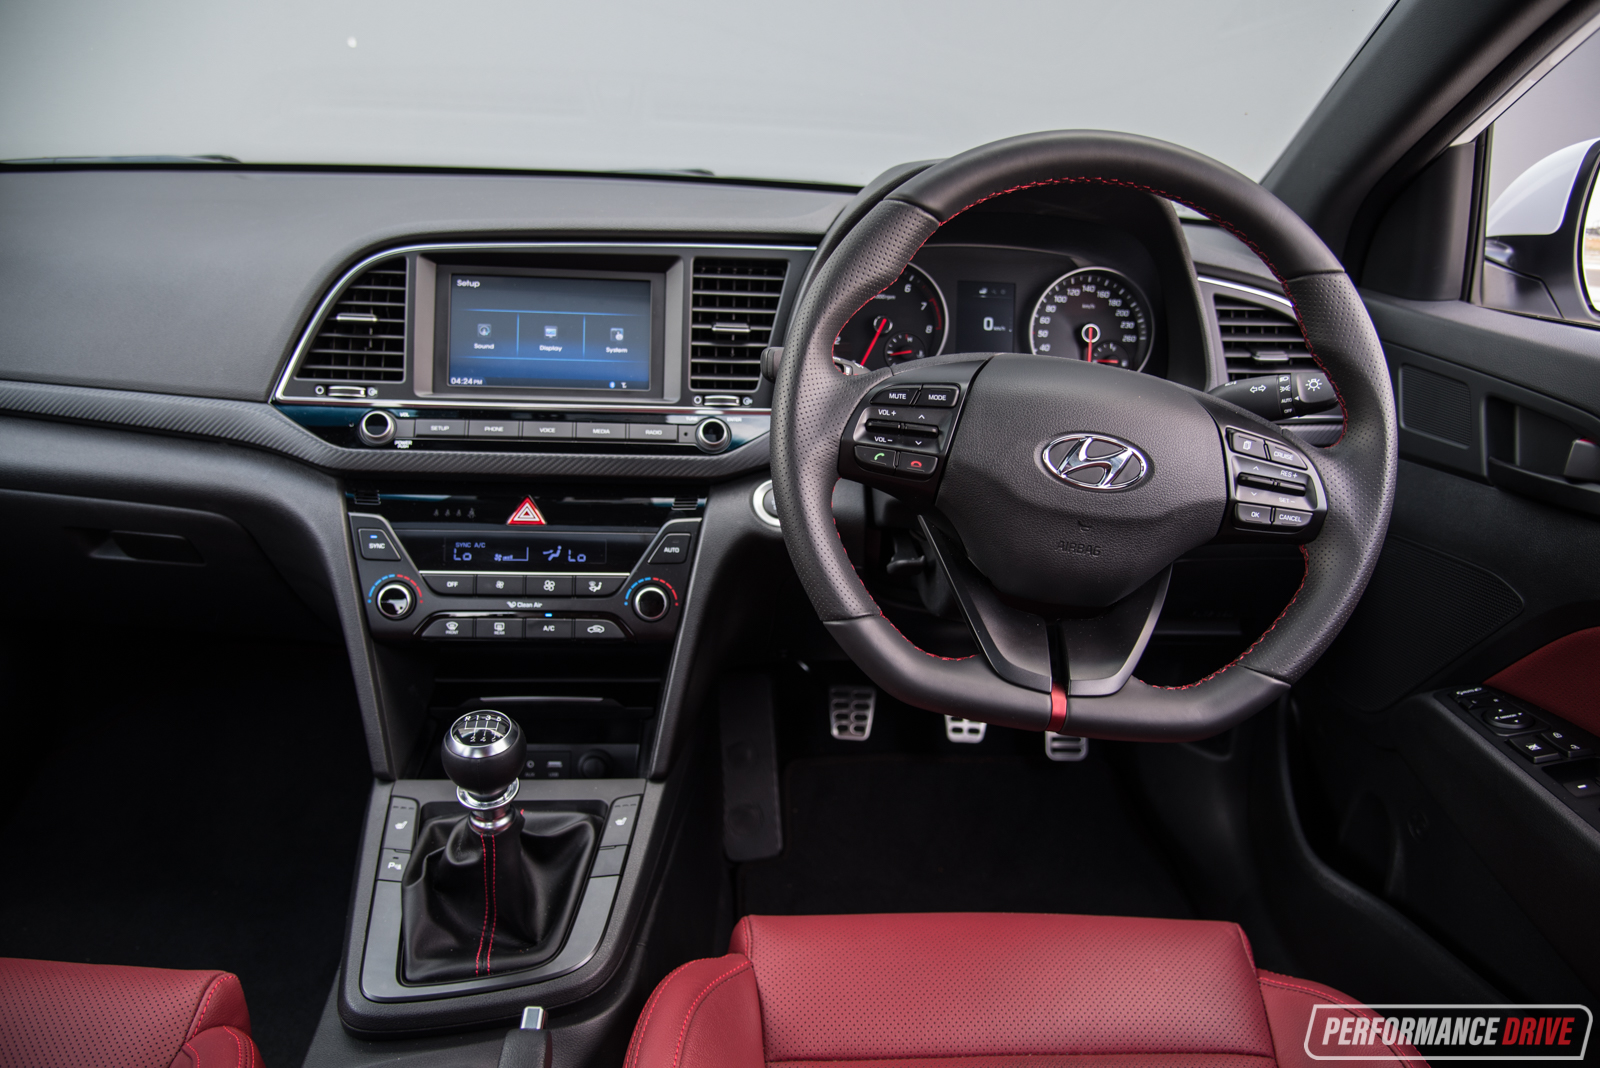 2017 Hyundai Elantra Sr Turbo Review Manual Amp Dct Auto